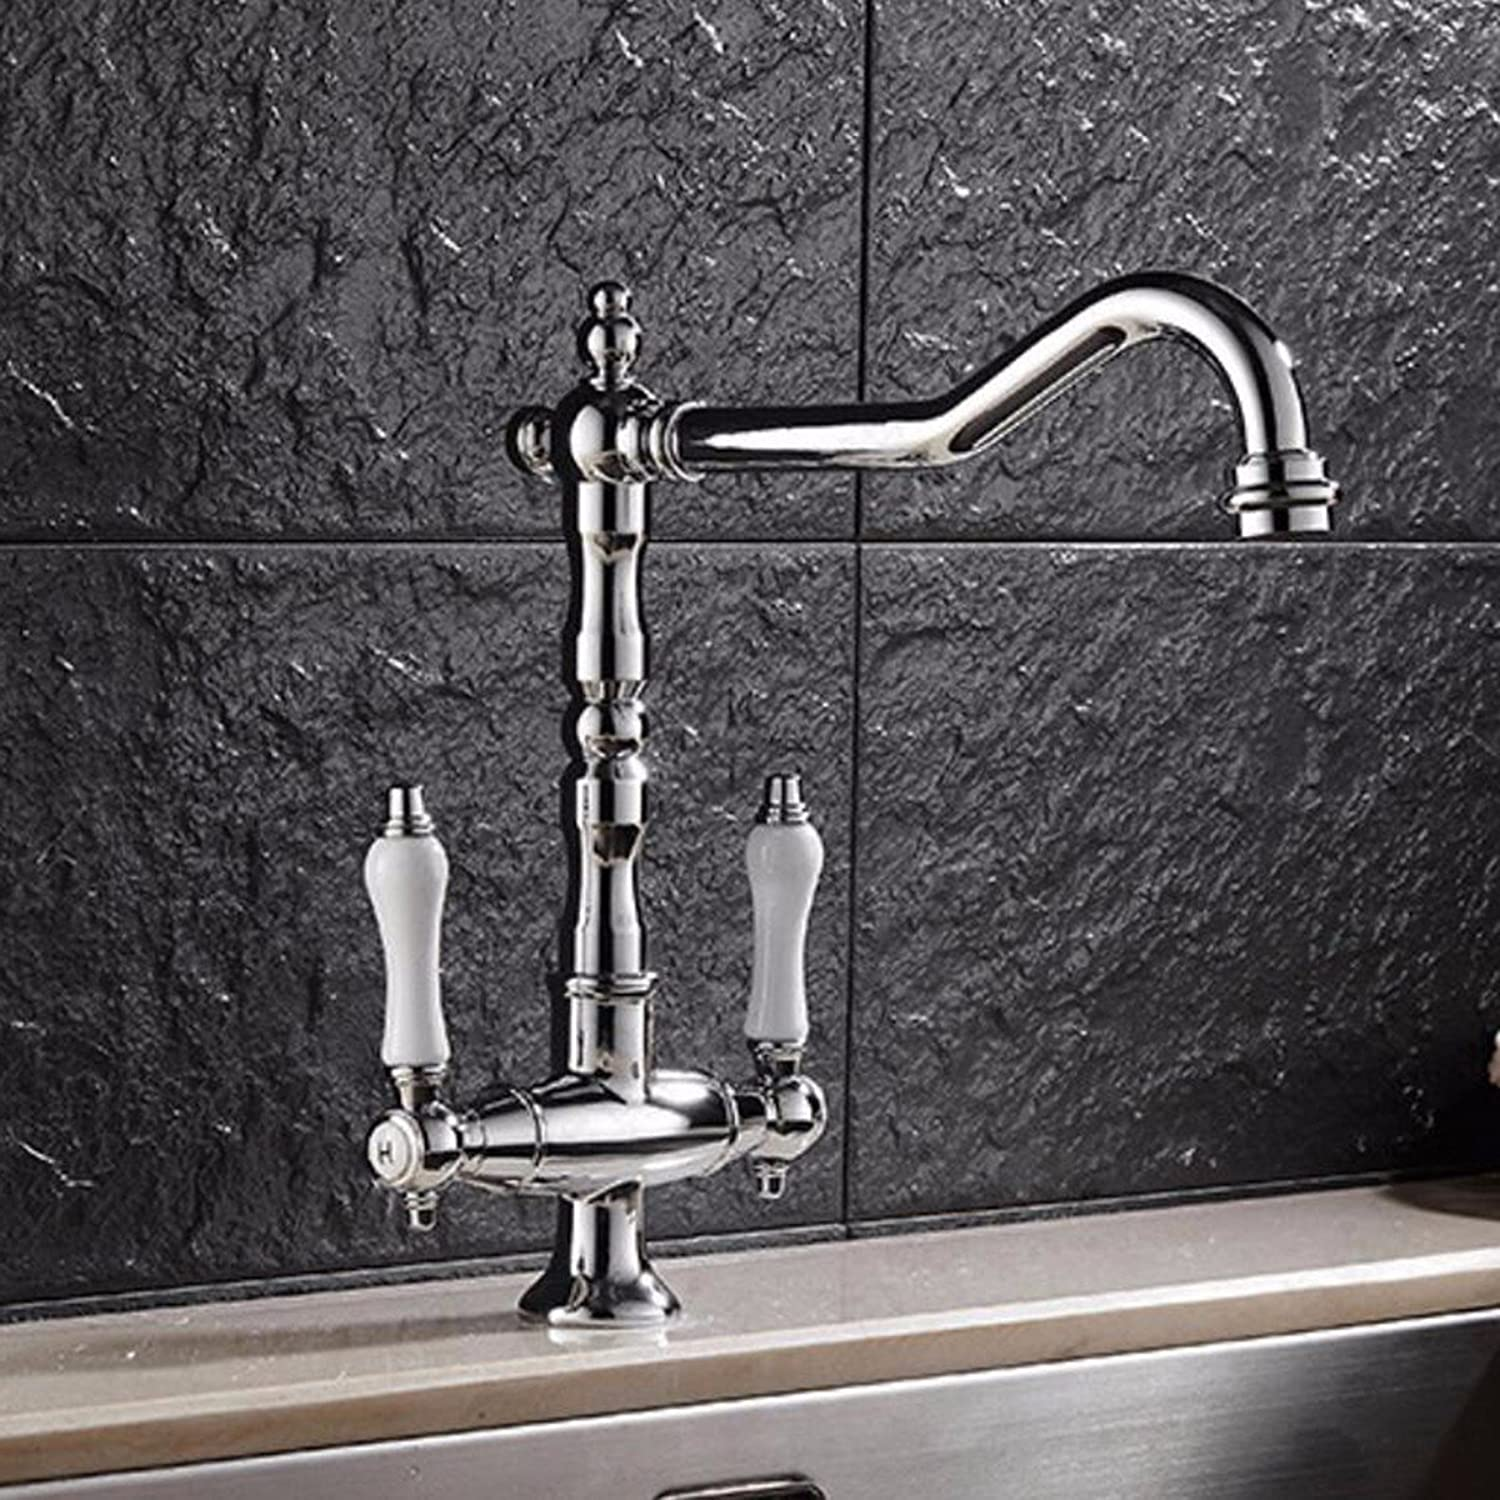 Kitchen faucet European Kitchen Swivel Faucet, Washing Basin Hot And Cold Water Faucet